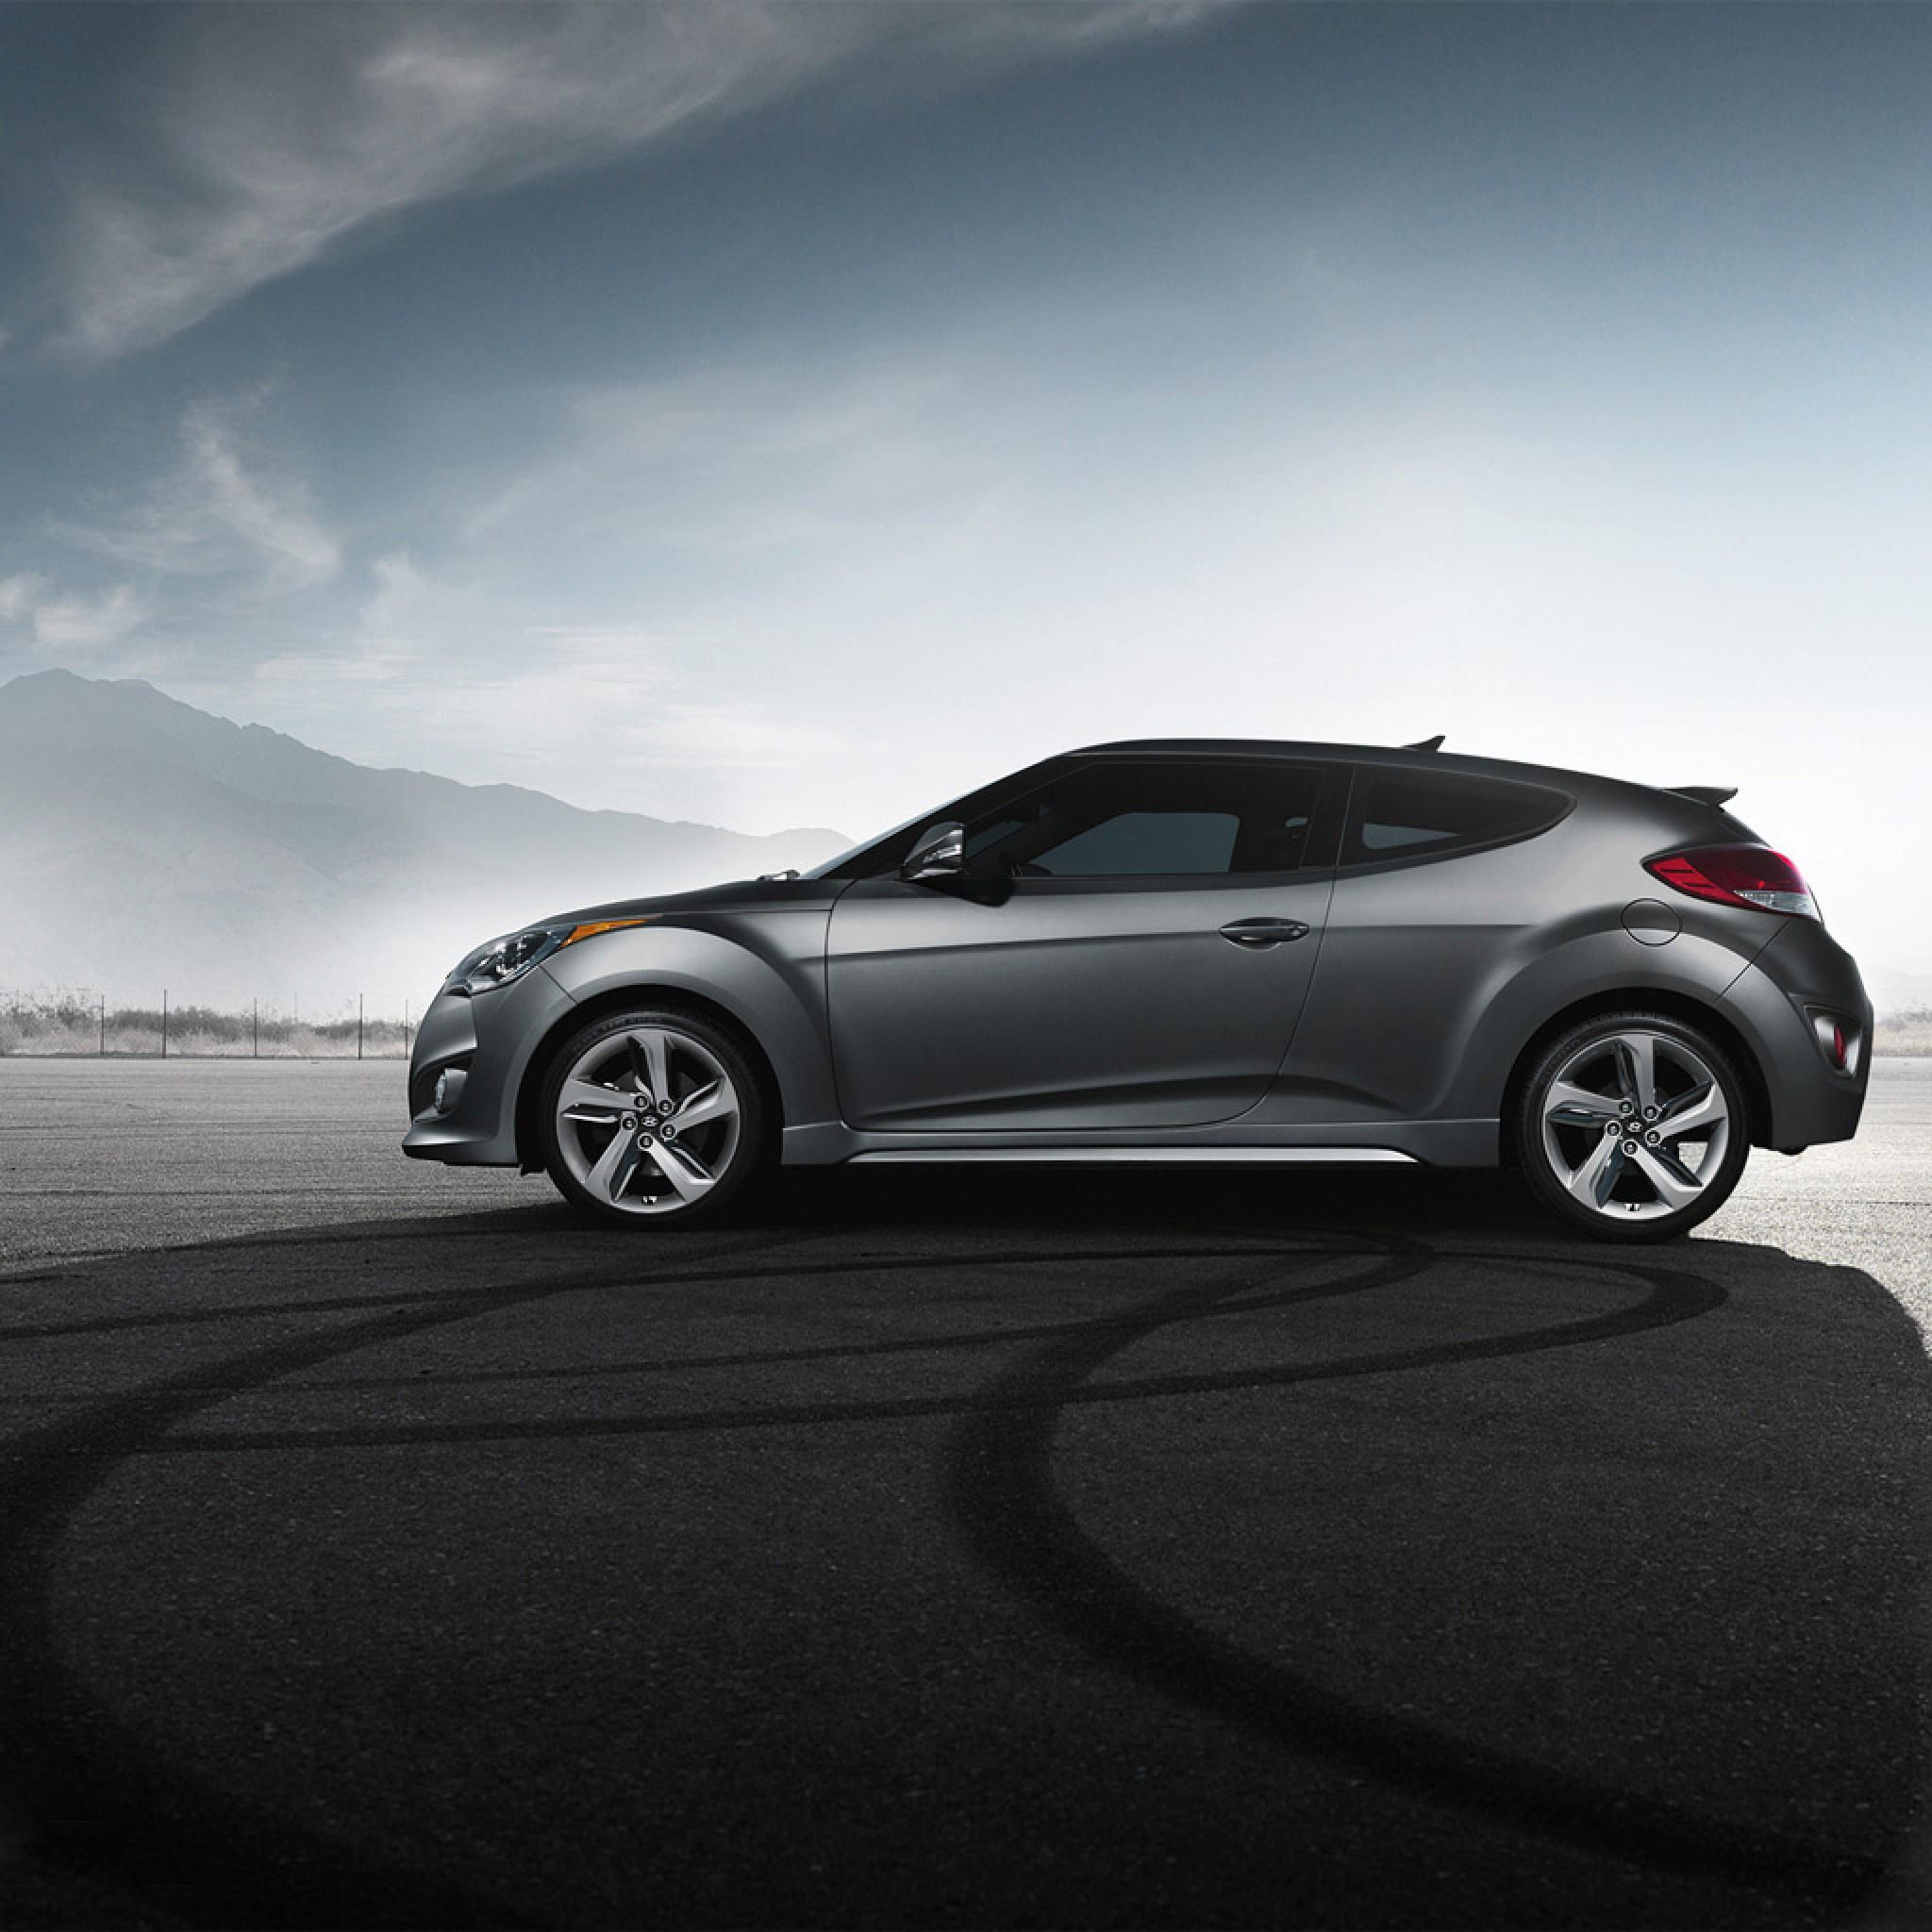 Hyundai Veloster Wallpaper High Quality Resolution #BLF